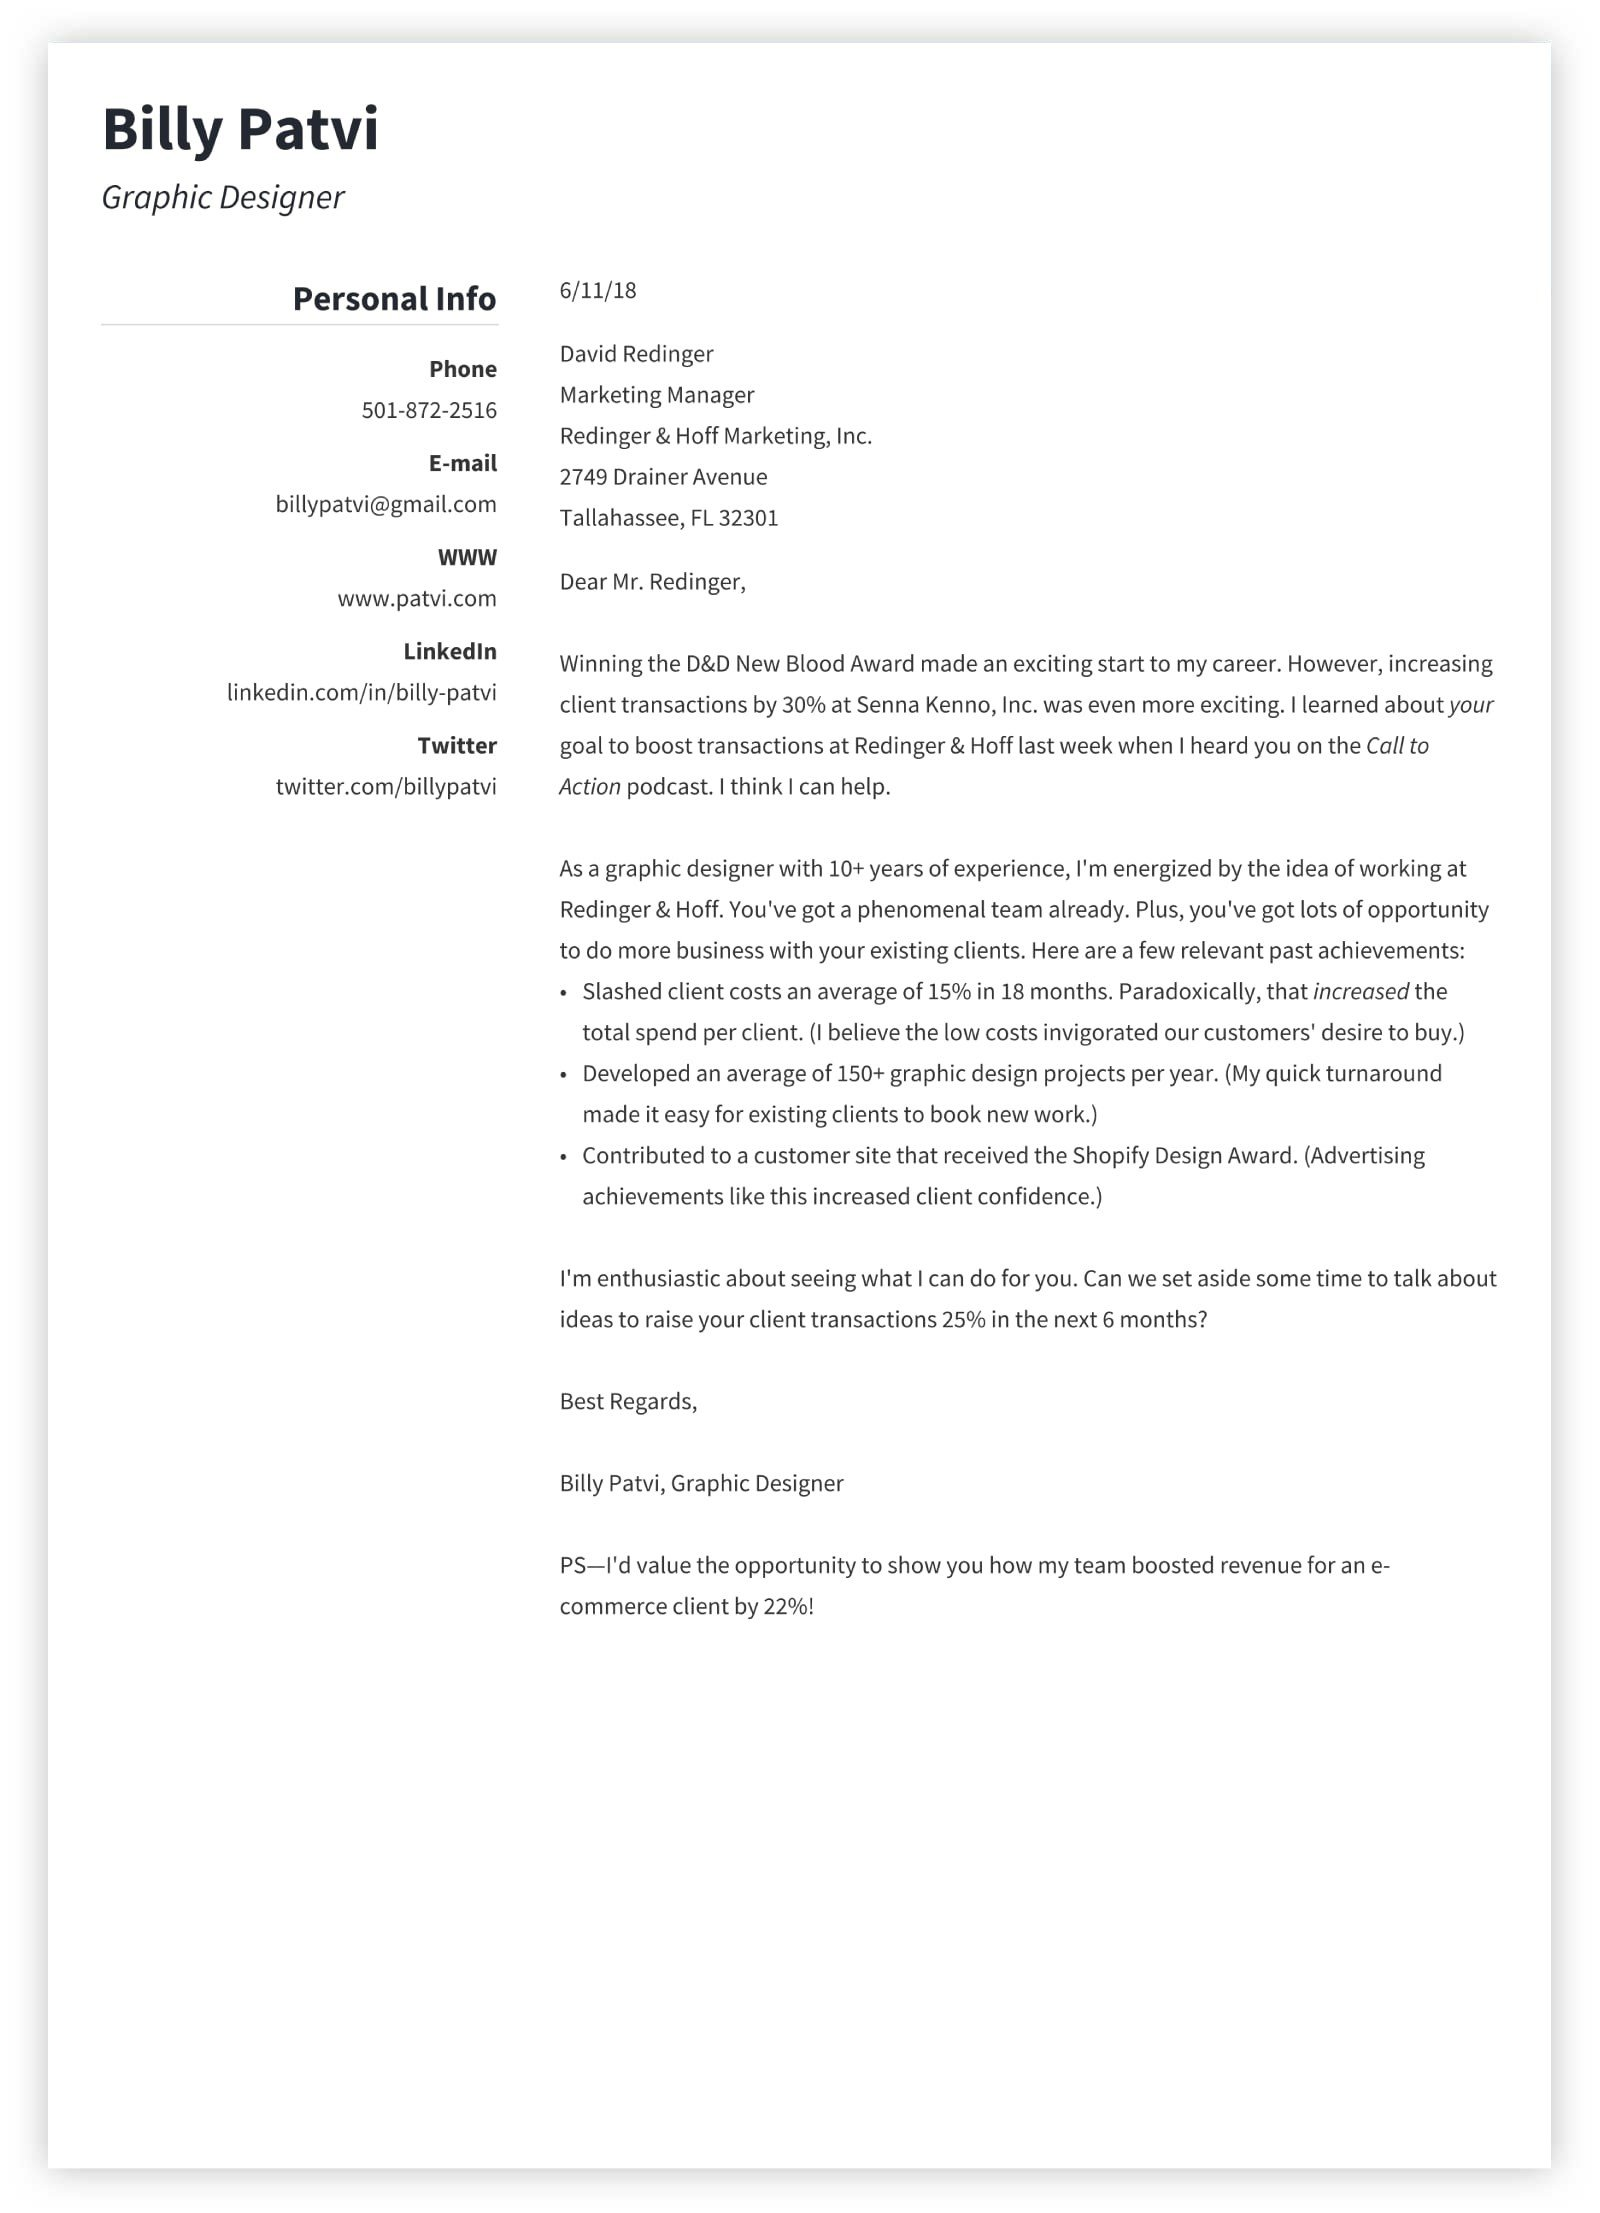 Good Application Letter For Teacher, Graphic Design Cover Letter, Good Application Letter For Teacher